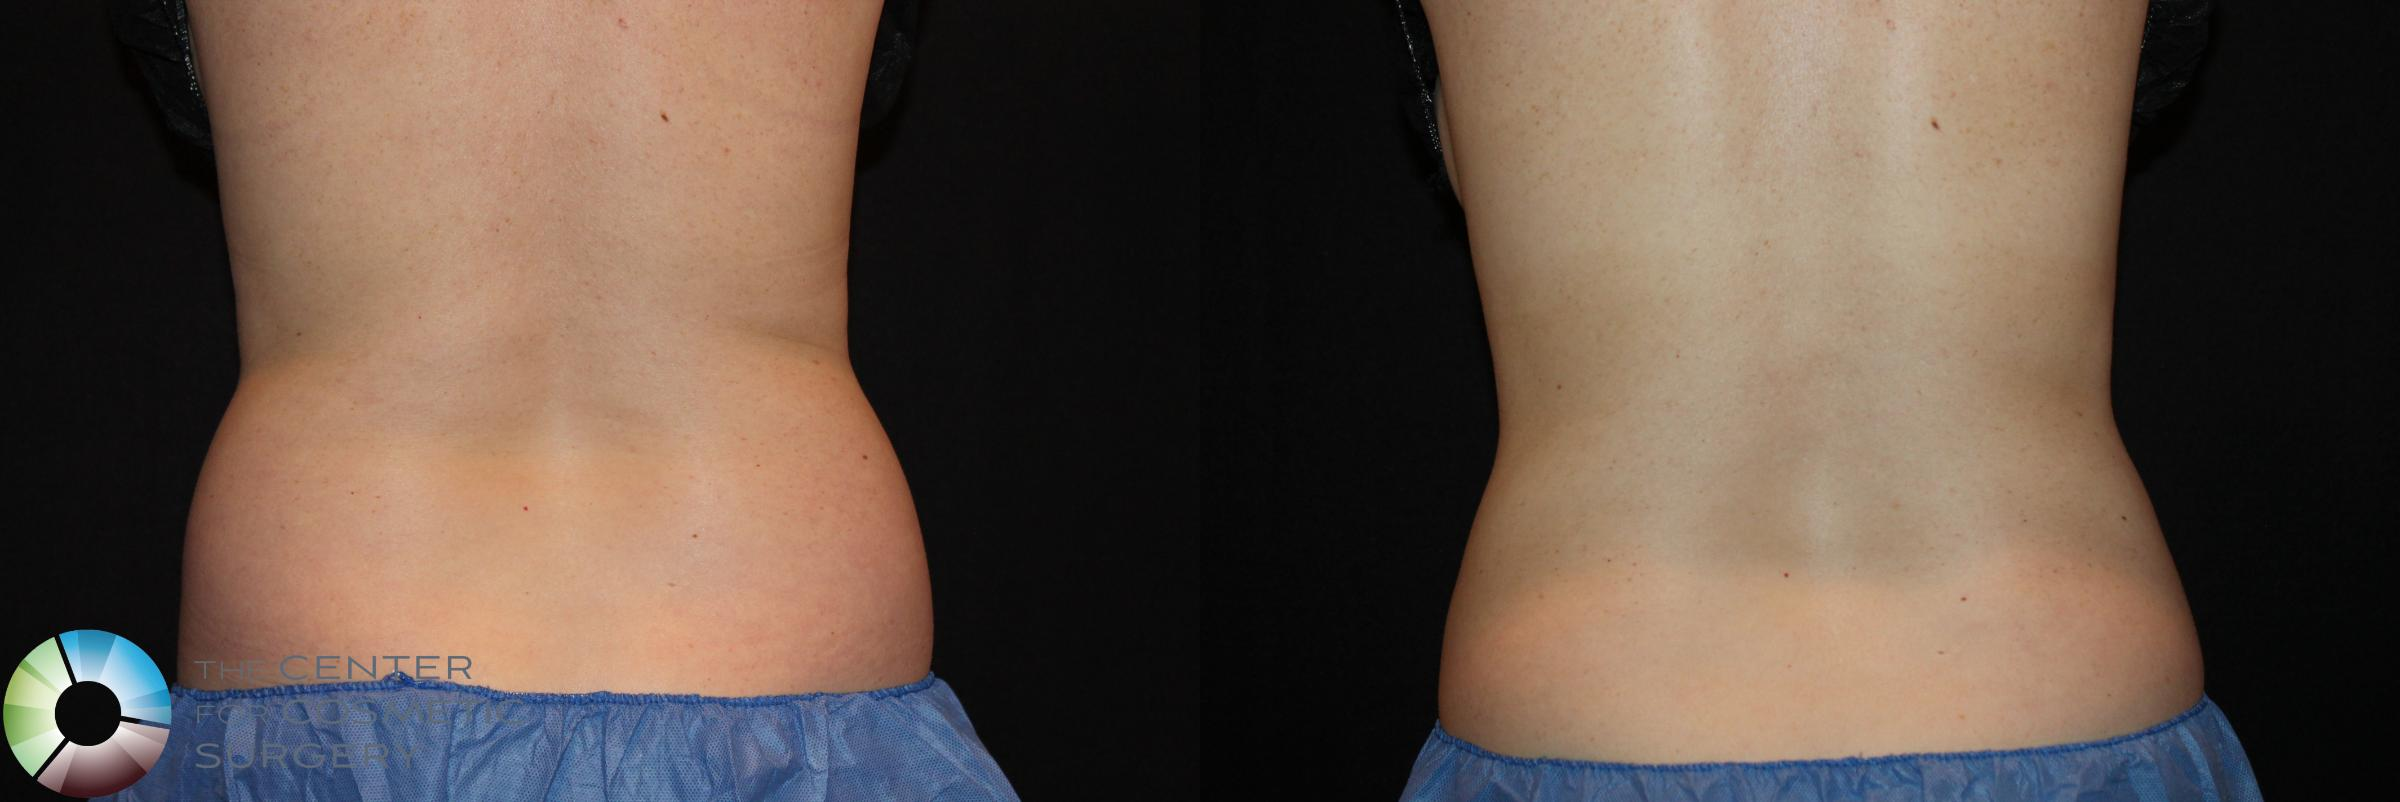 CoolSculpting Case 726 Before & After View #2 | Golden, CO | The Center for Cosmetic Surgery